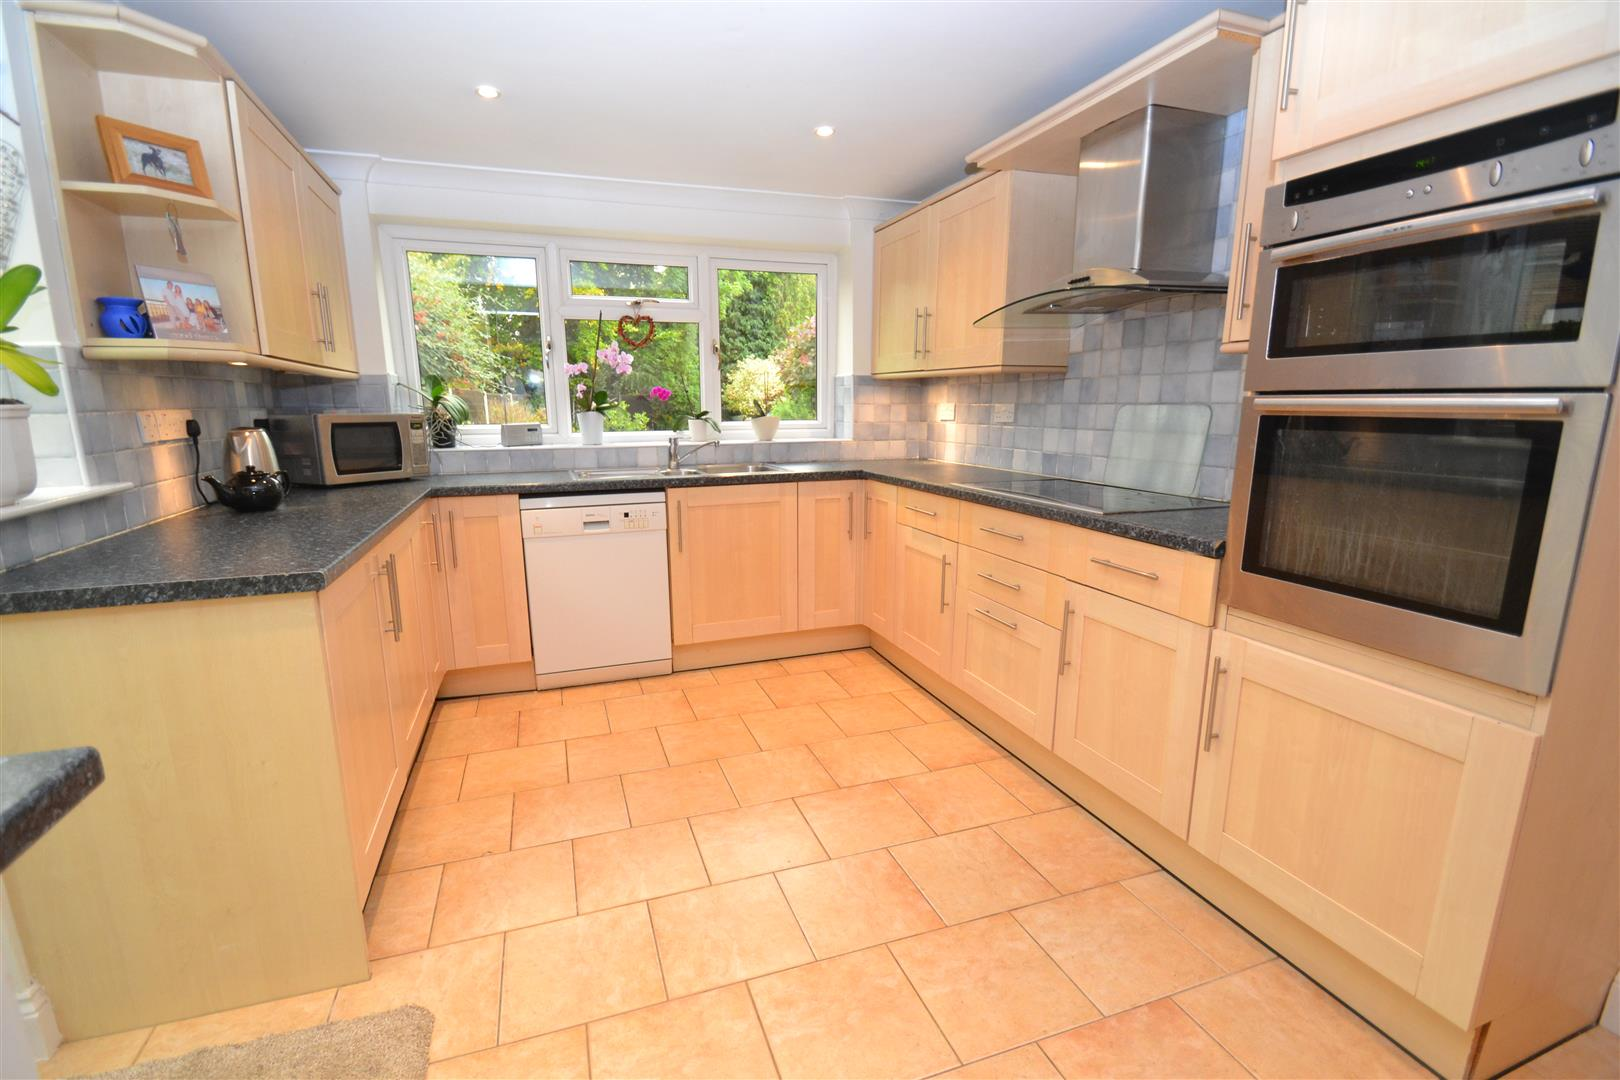 4 Bedrooms Semi Detached House for sale in Woodside Crescent, Smallfield, Horley